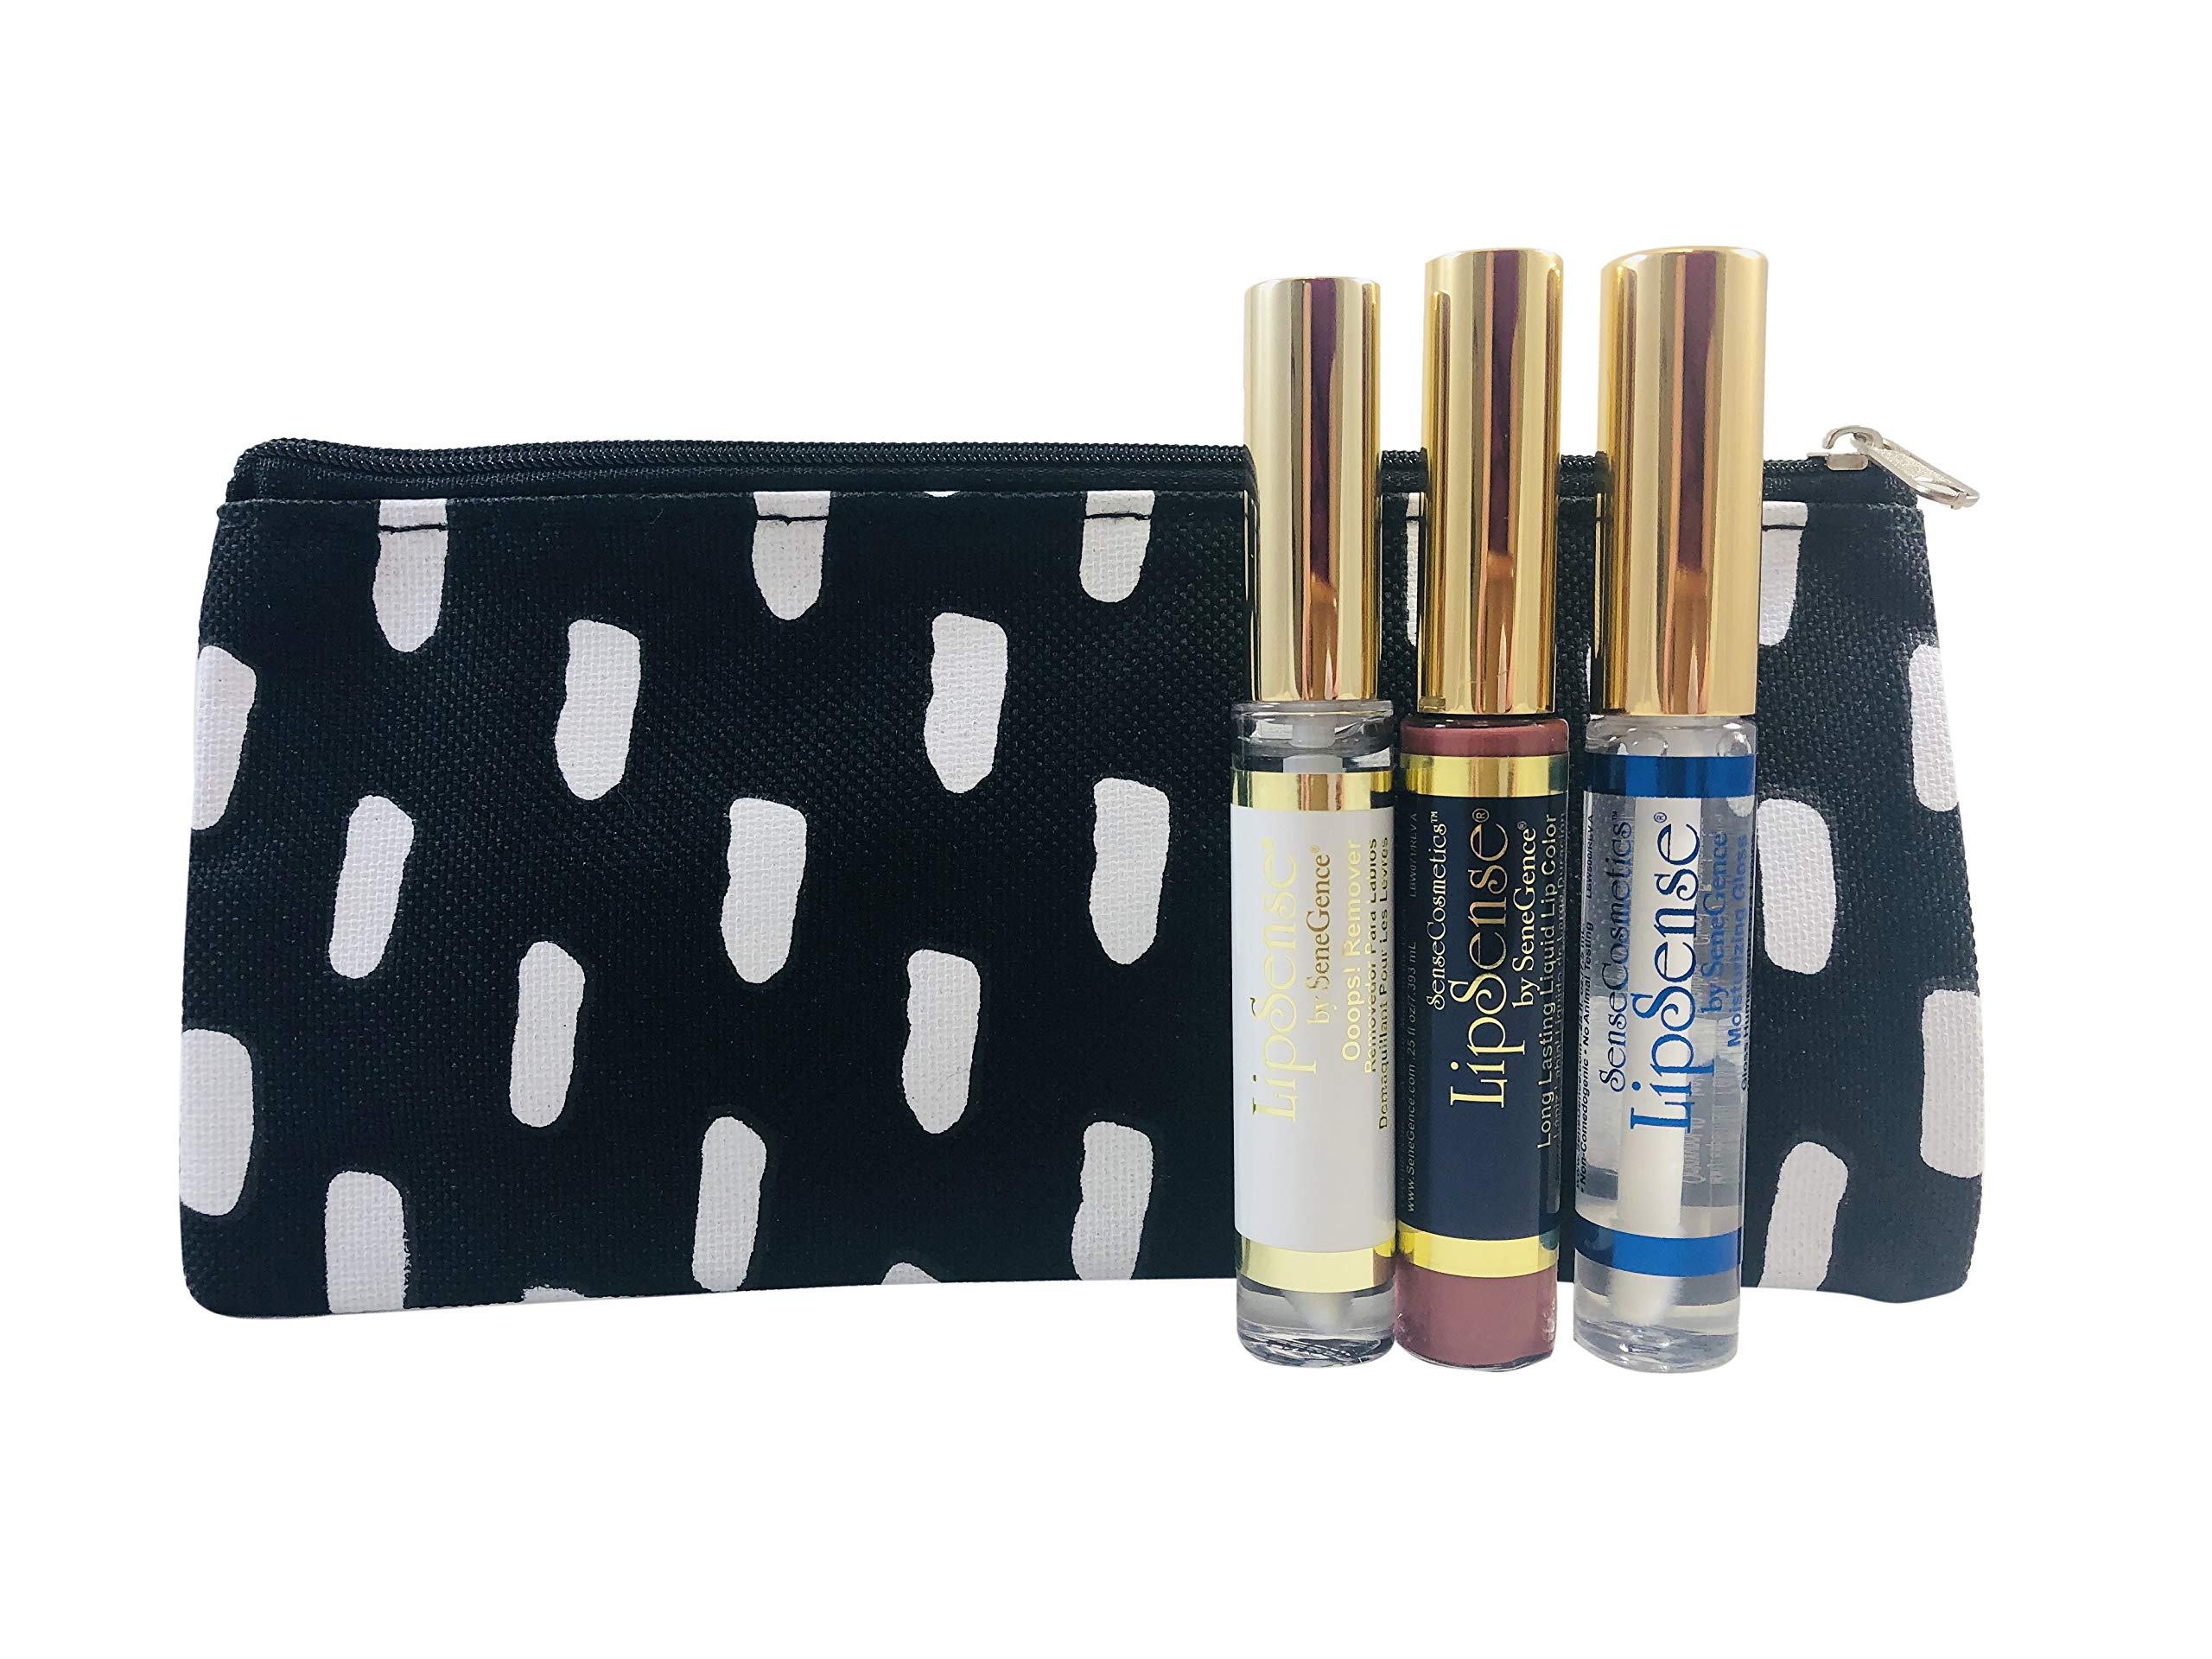 LipSense by SeneGence Glossy Gloss - LipSense Bella - LipSense Ooops Remover Long Lasting Liquid Lip Color (3 Pack) Bundle with Free Holder